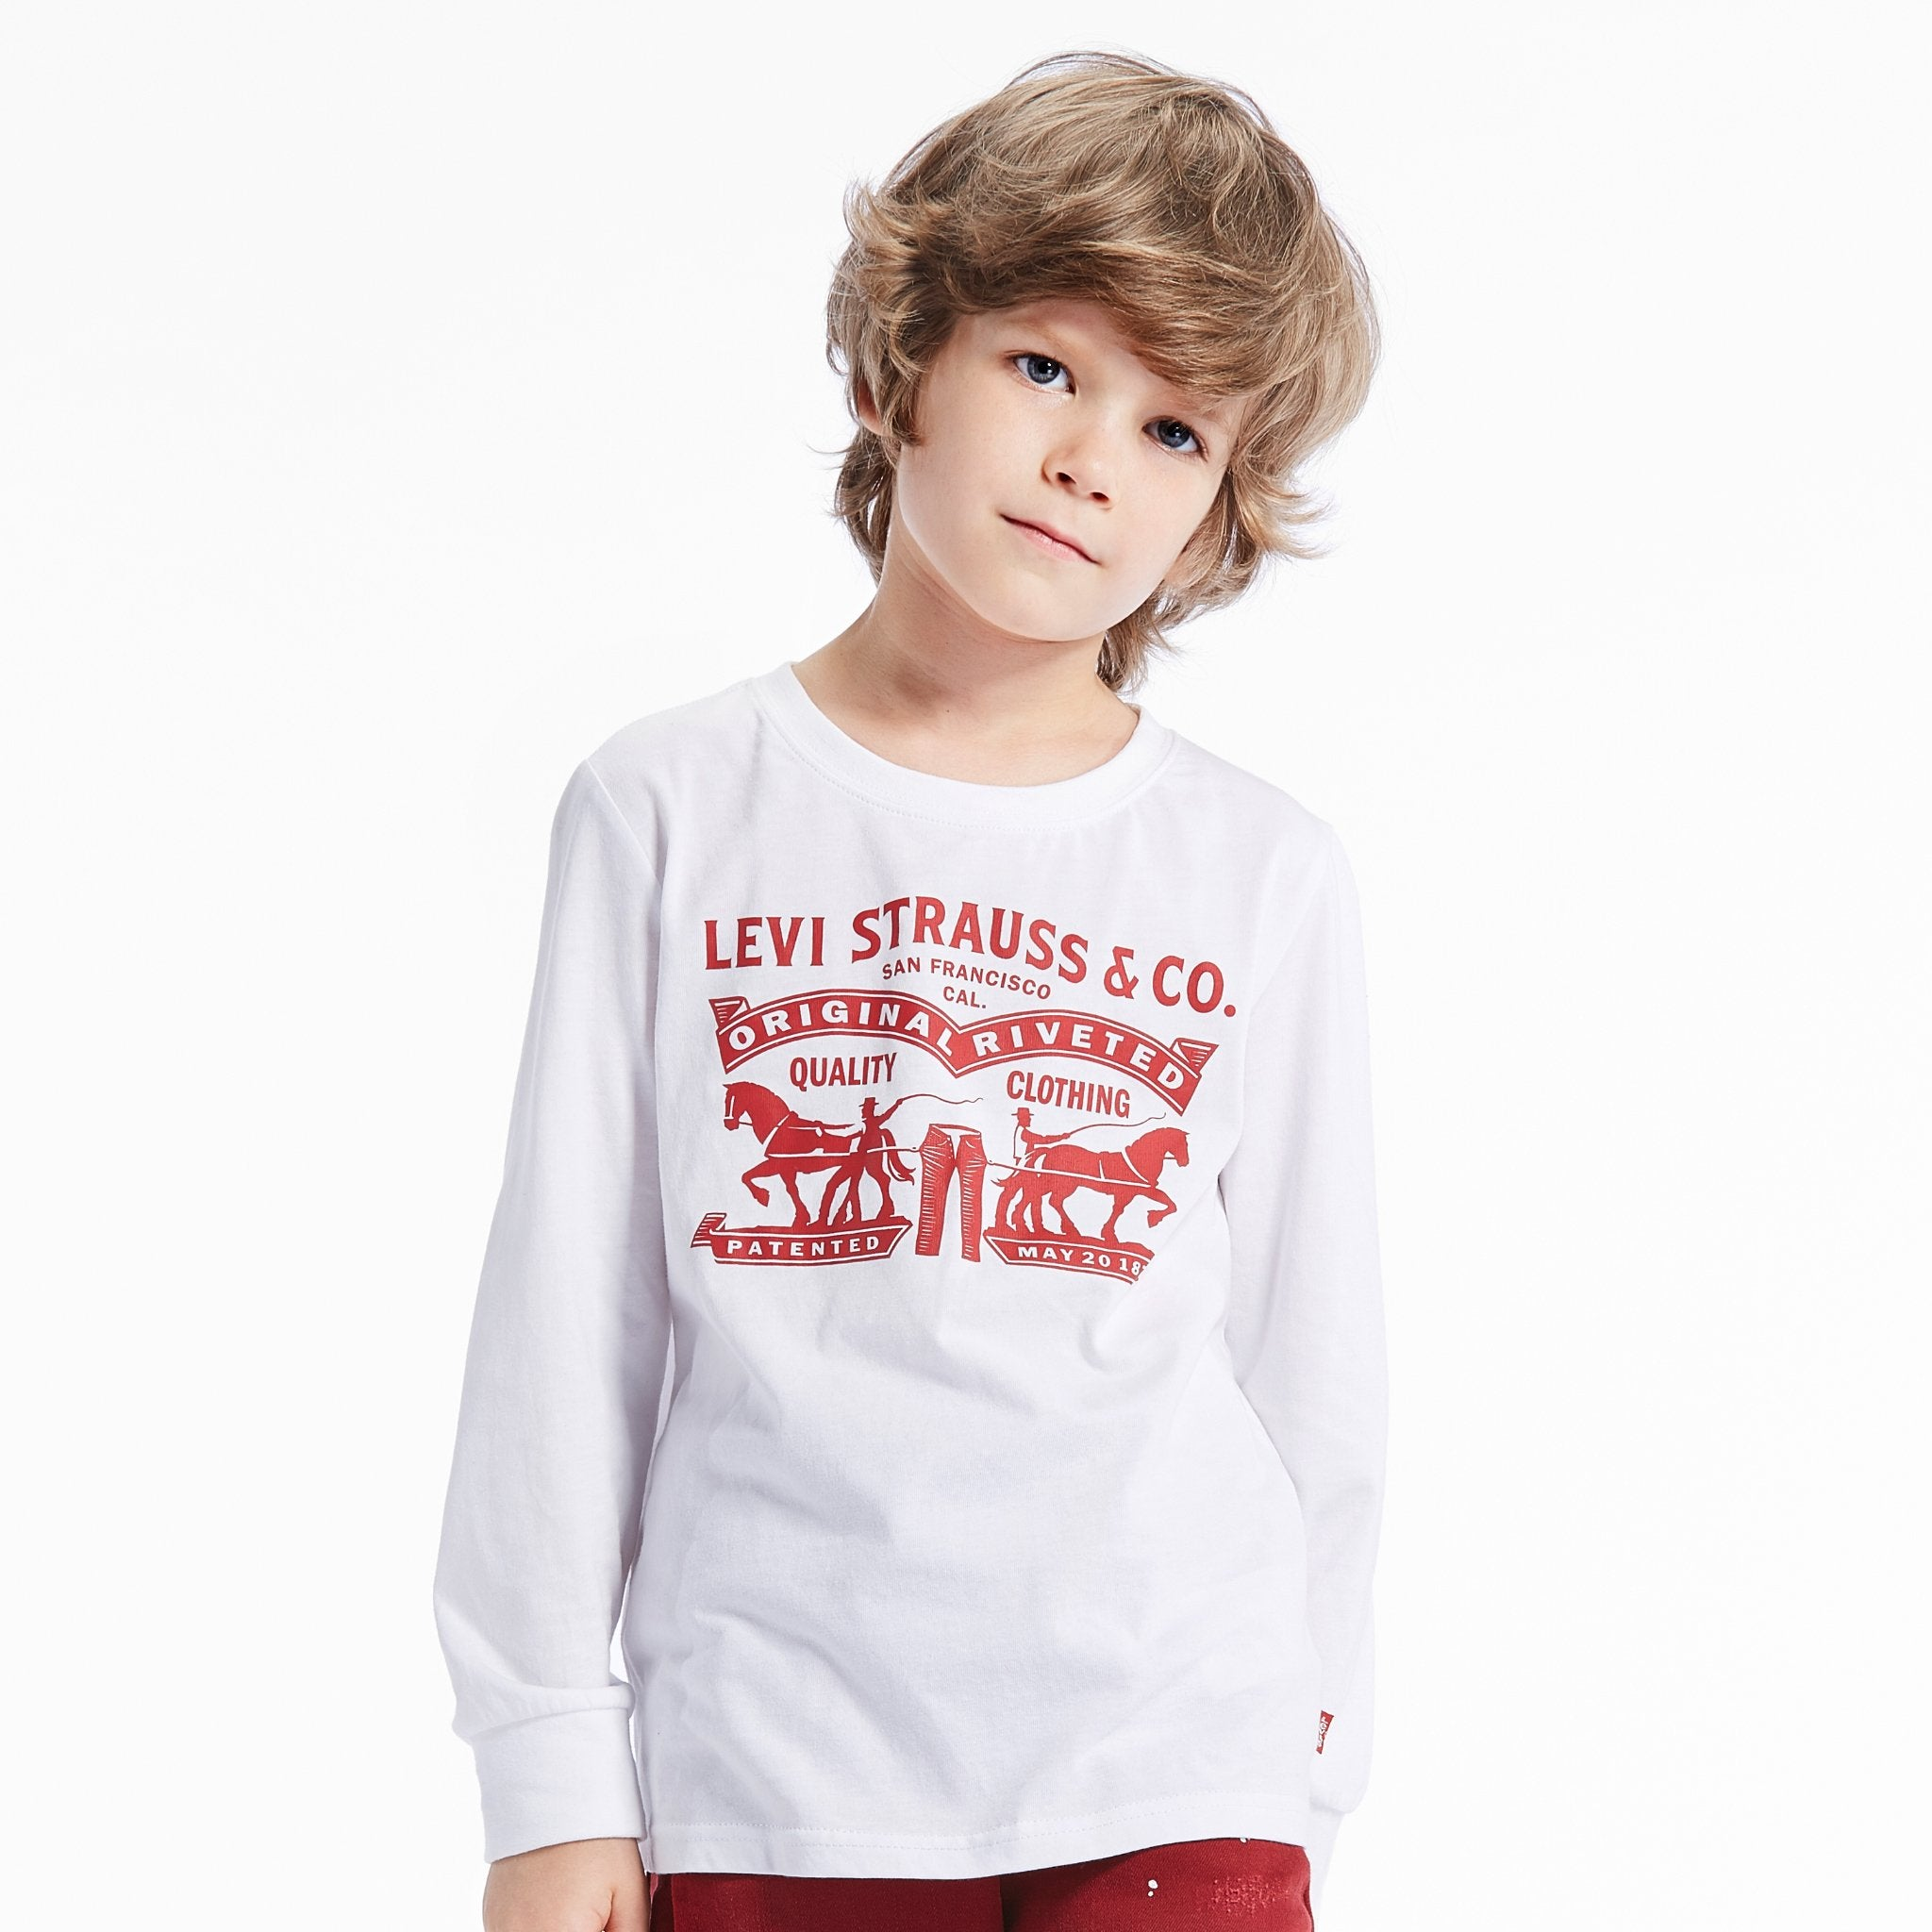 Levi's Long Sleeve Graphic Tee - rookiehk